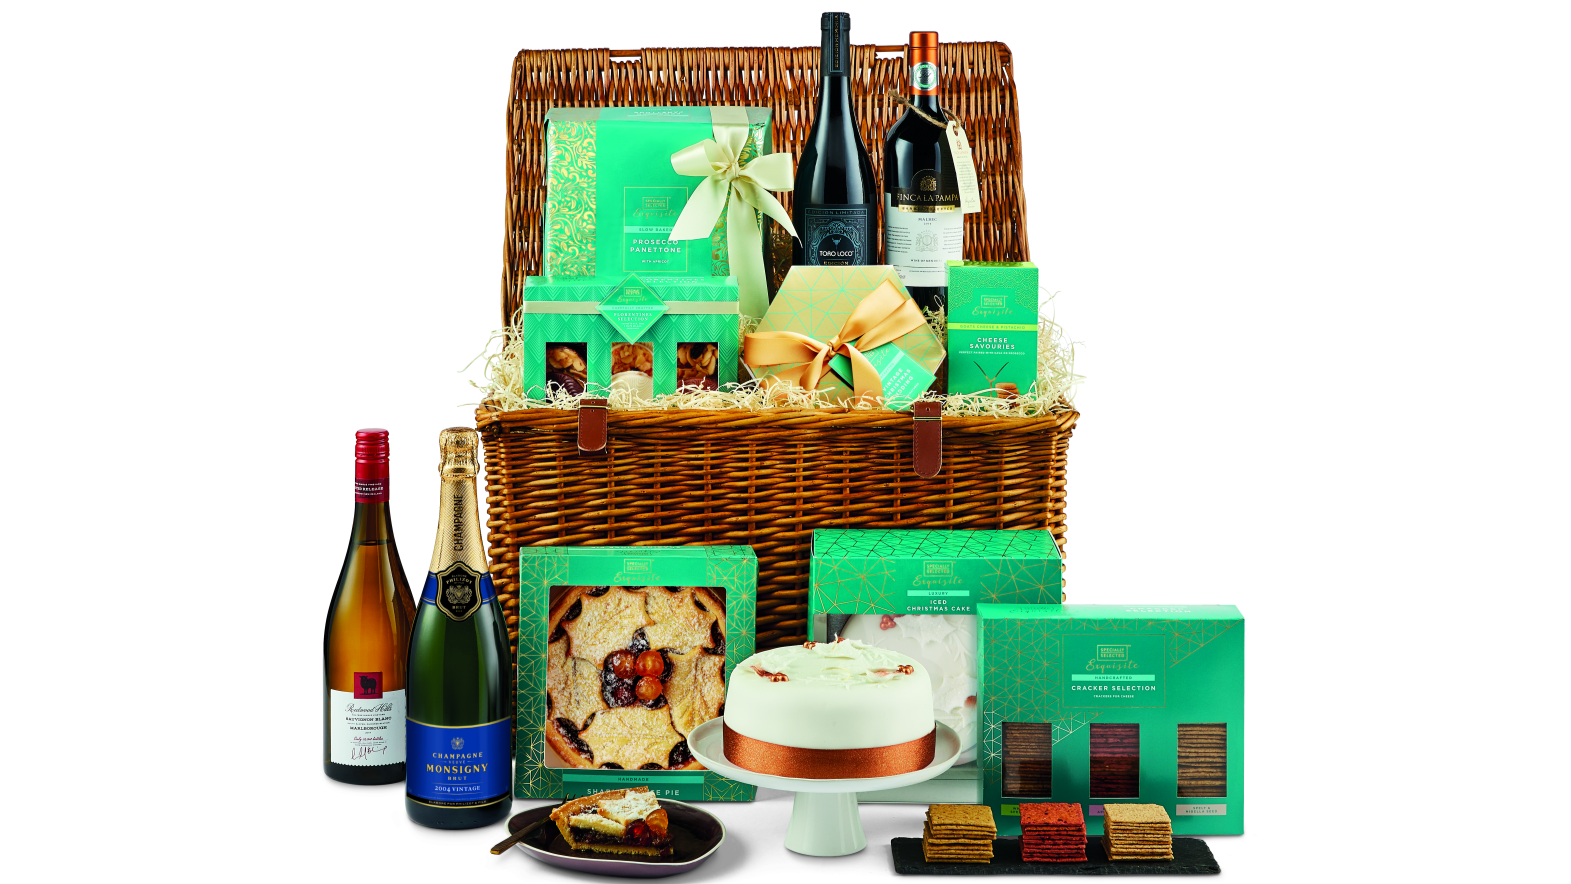 This 163 99 99 Aldi Hamper Is What Christmas Dreams Are Made